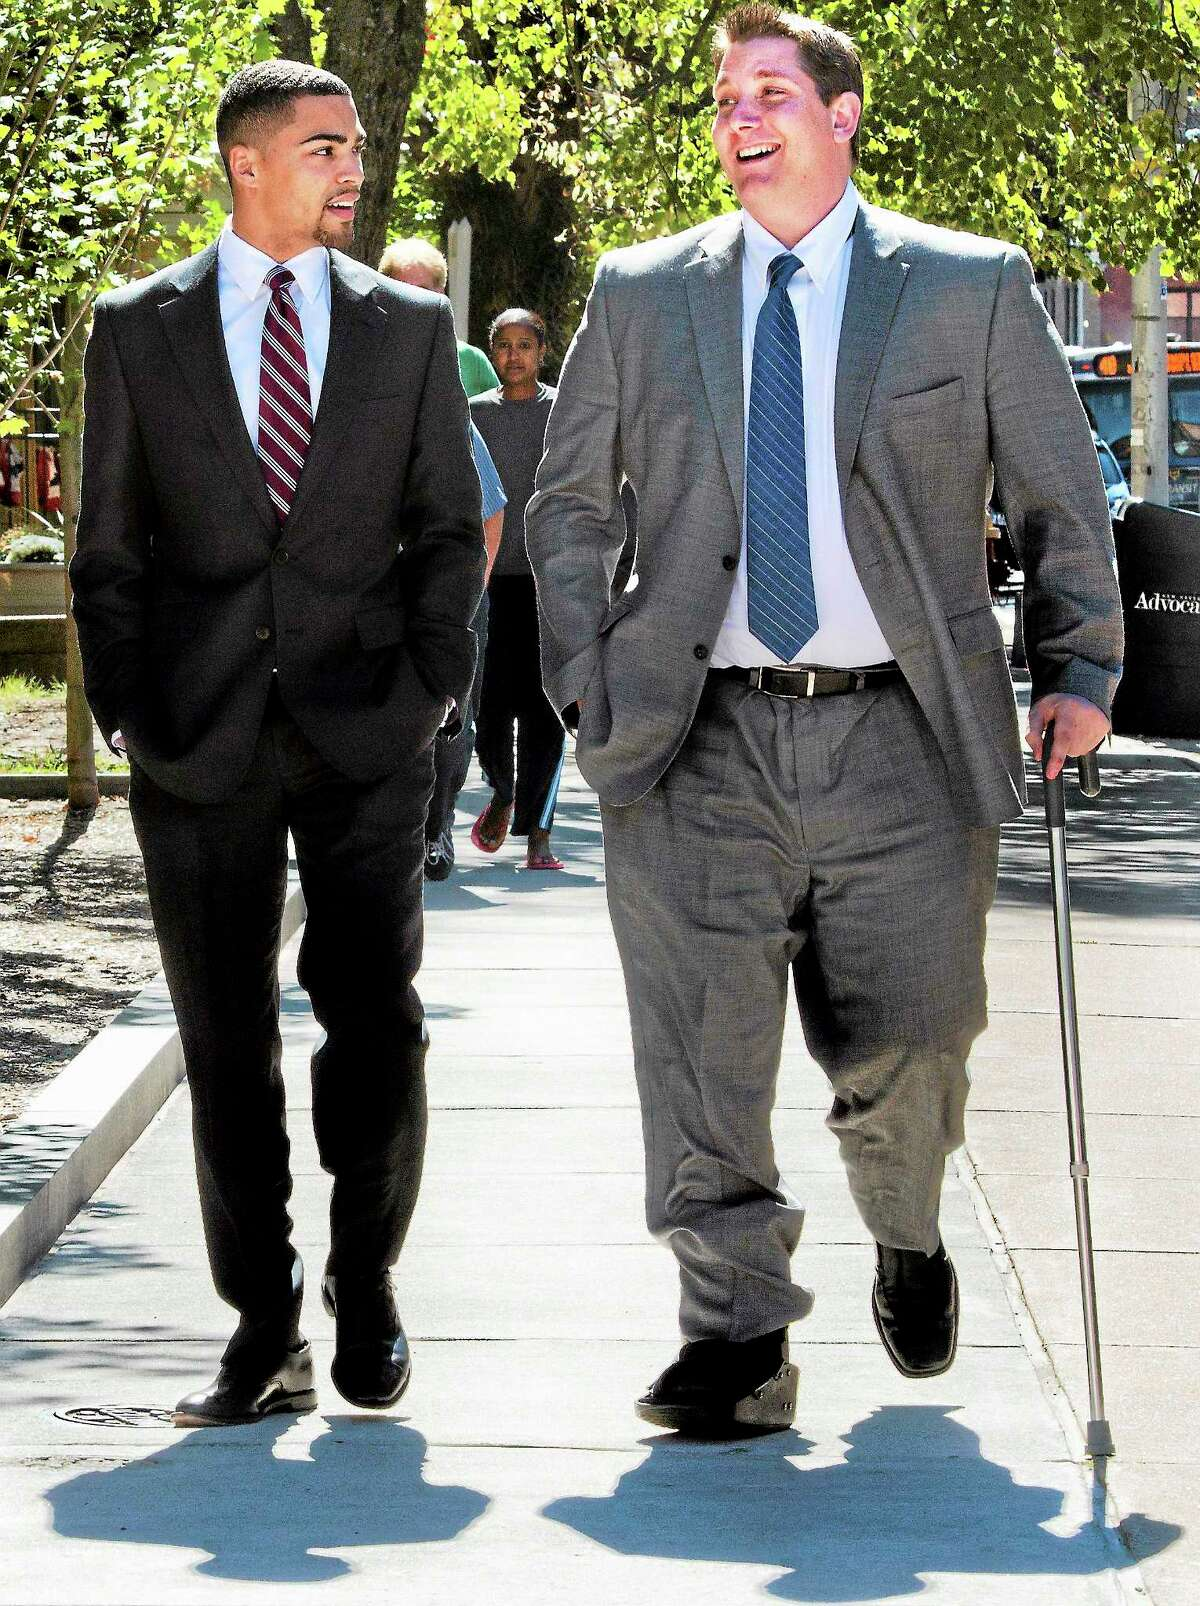 (Melanie Stengel — New Haven Register ) East Haven Police Officer, David Cari (R), and his lawyer, leave U.S. District Court in Hartford for a lunch break 9/23.